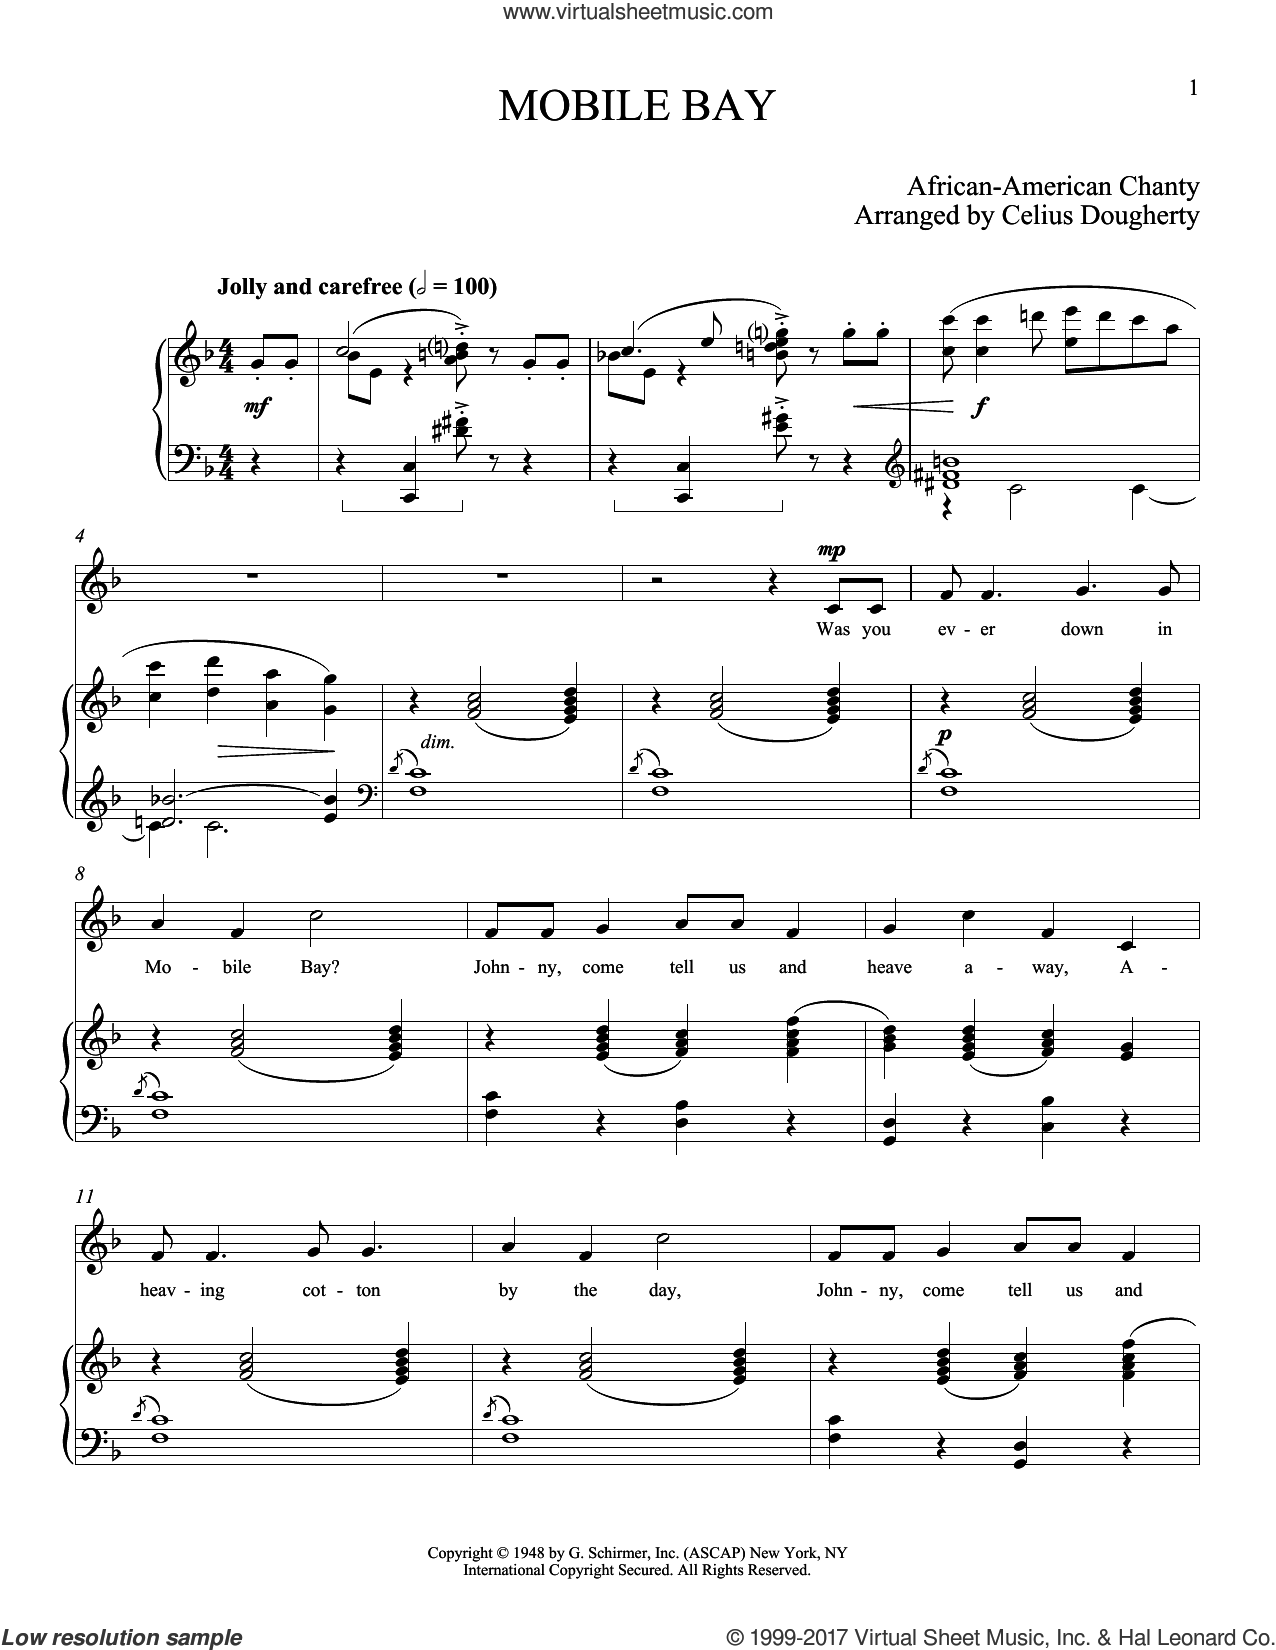 Mobile Bay sheet music for voice and piano (Tenor) by Celius Dougherty, classical score, intermediate skill level